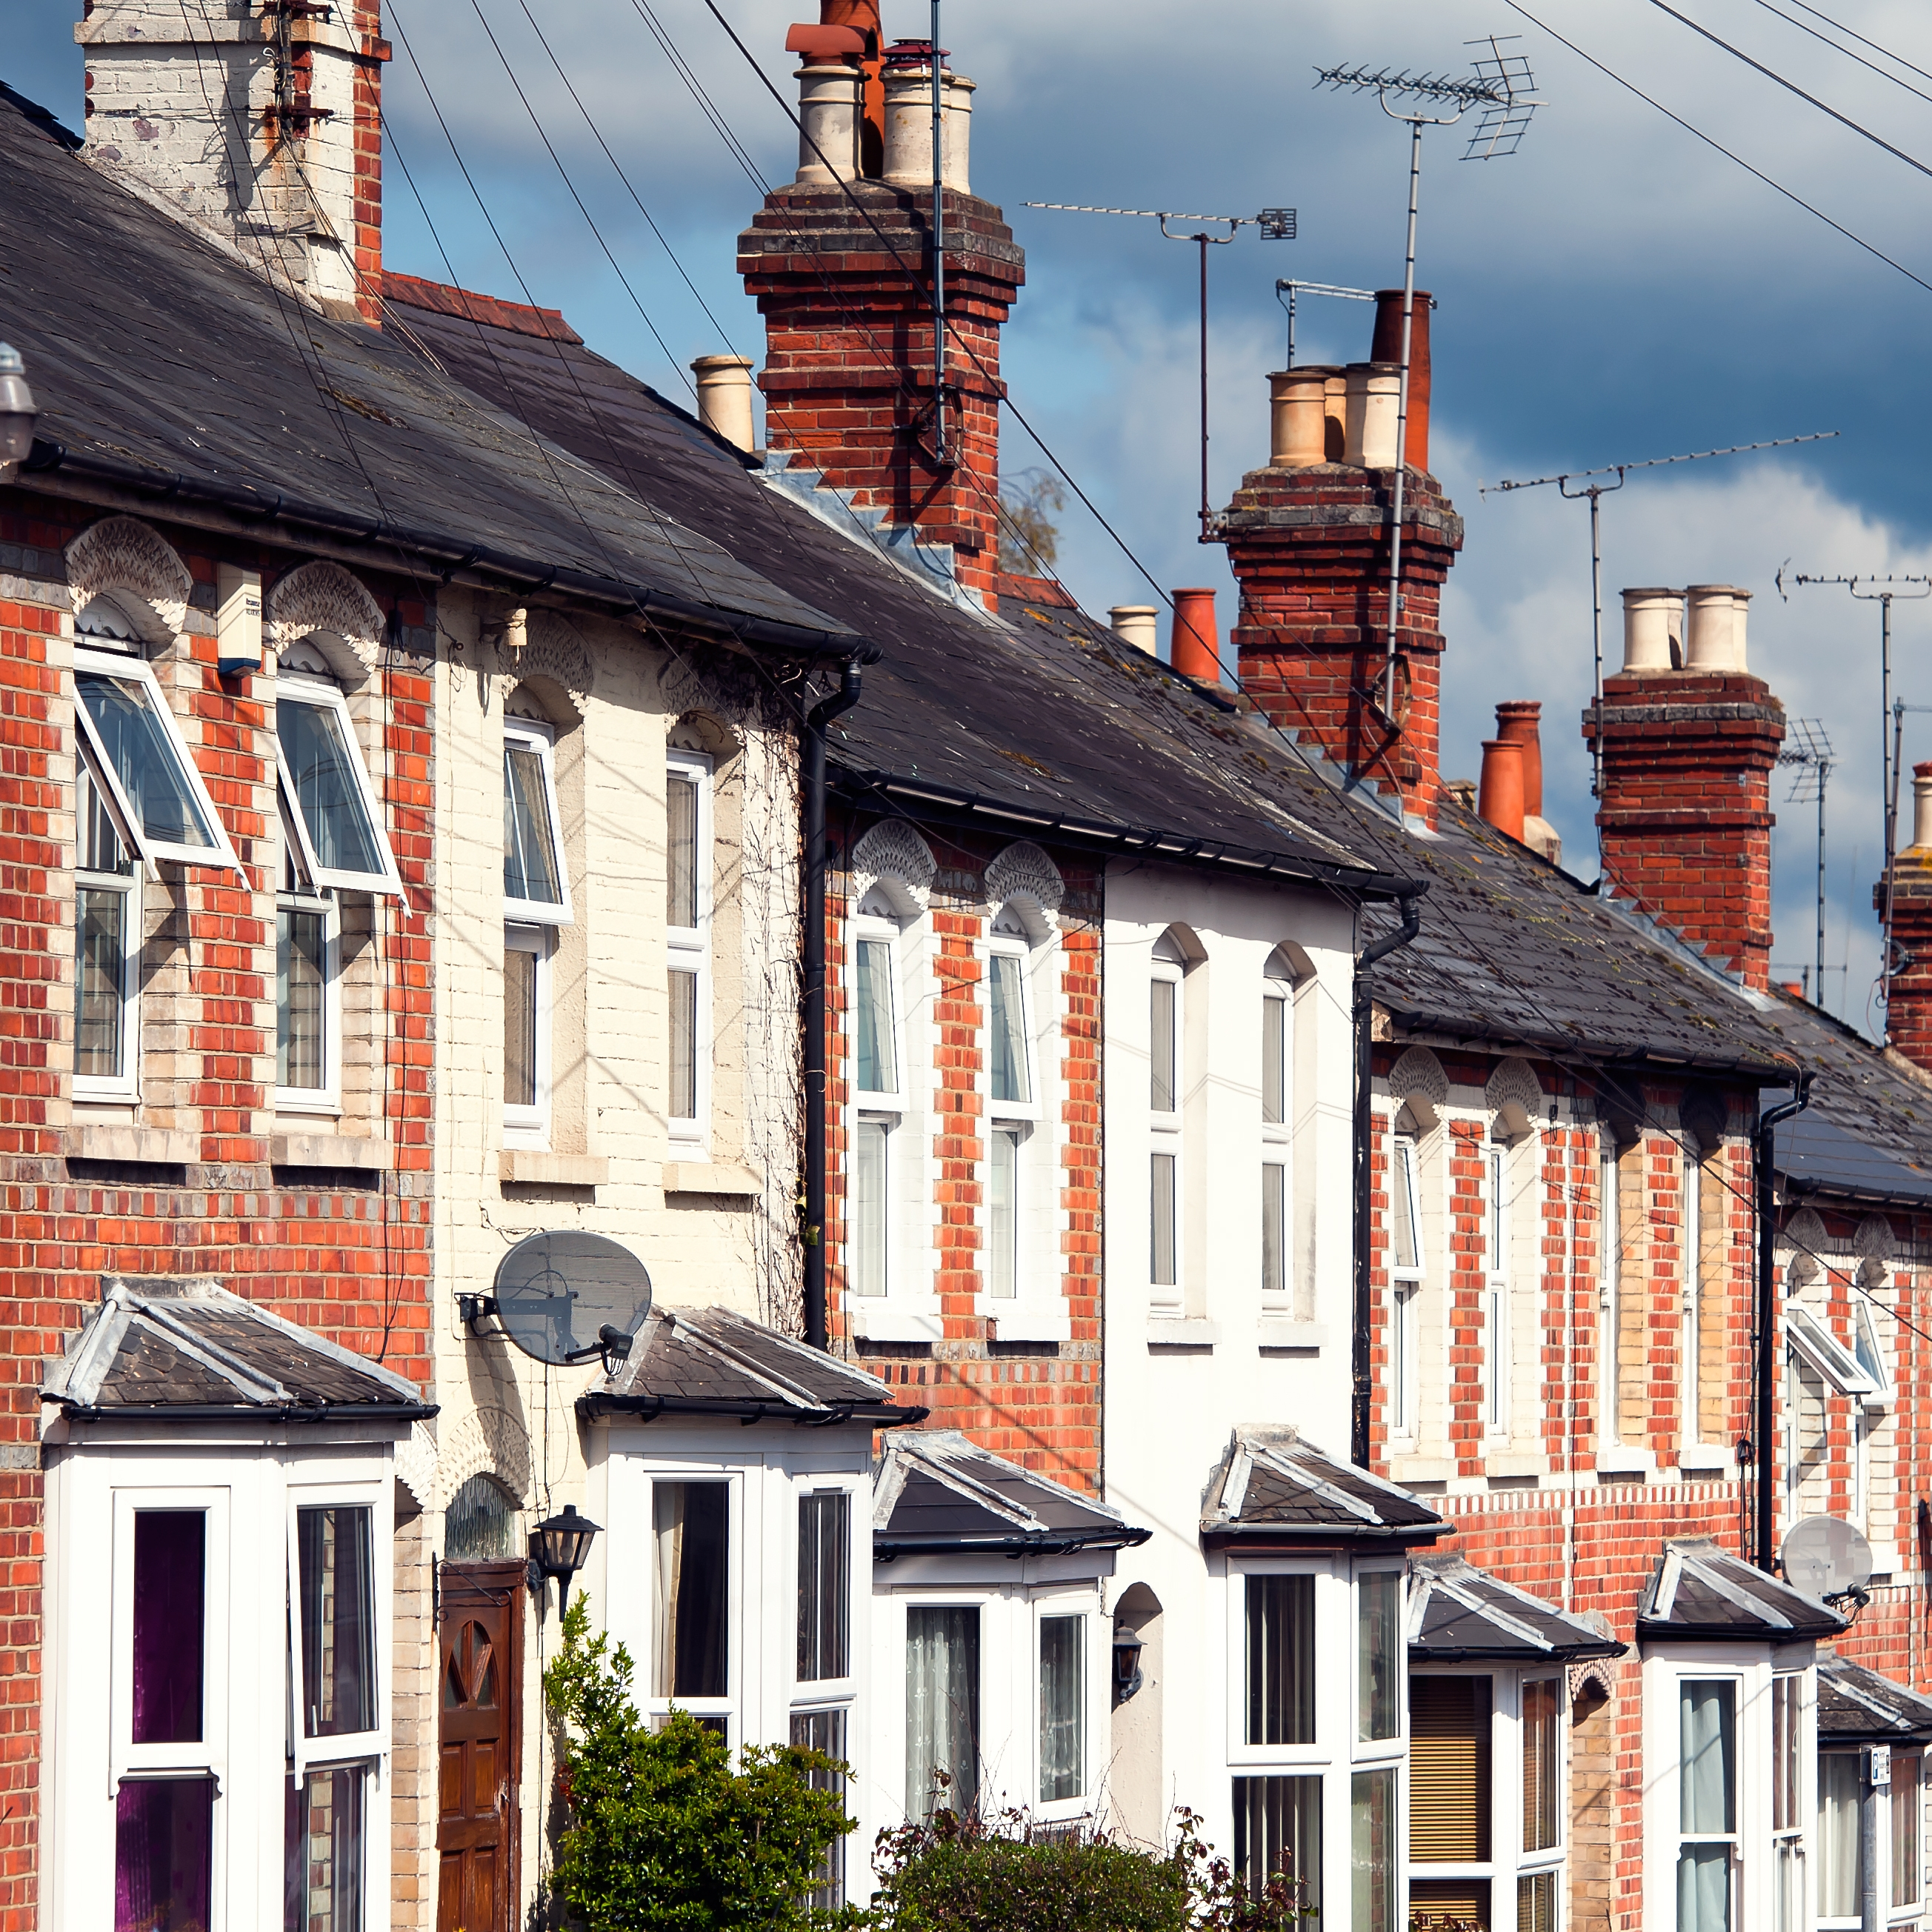 Rule change to free mortgage prisoners could happen 'fairly quickly'